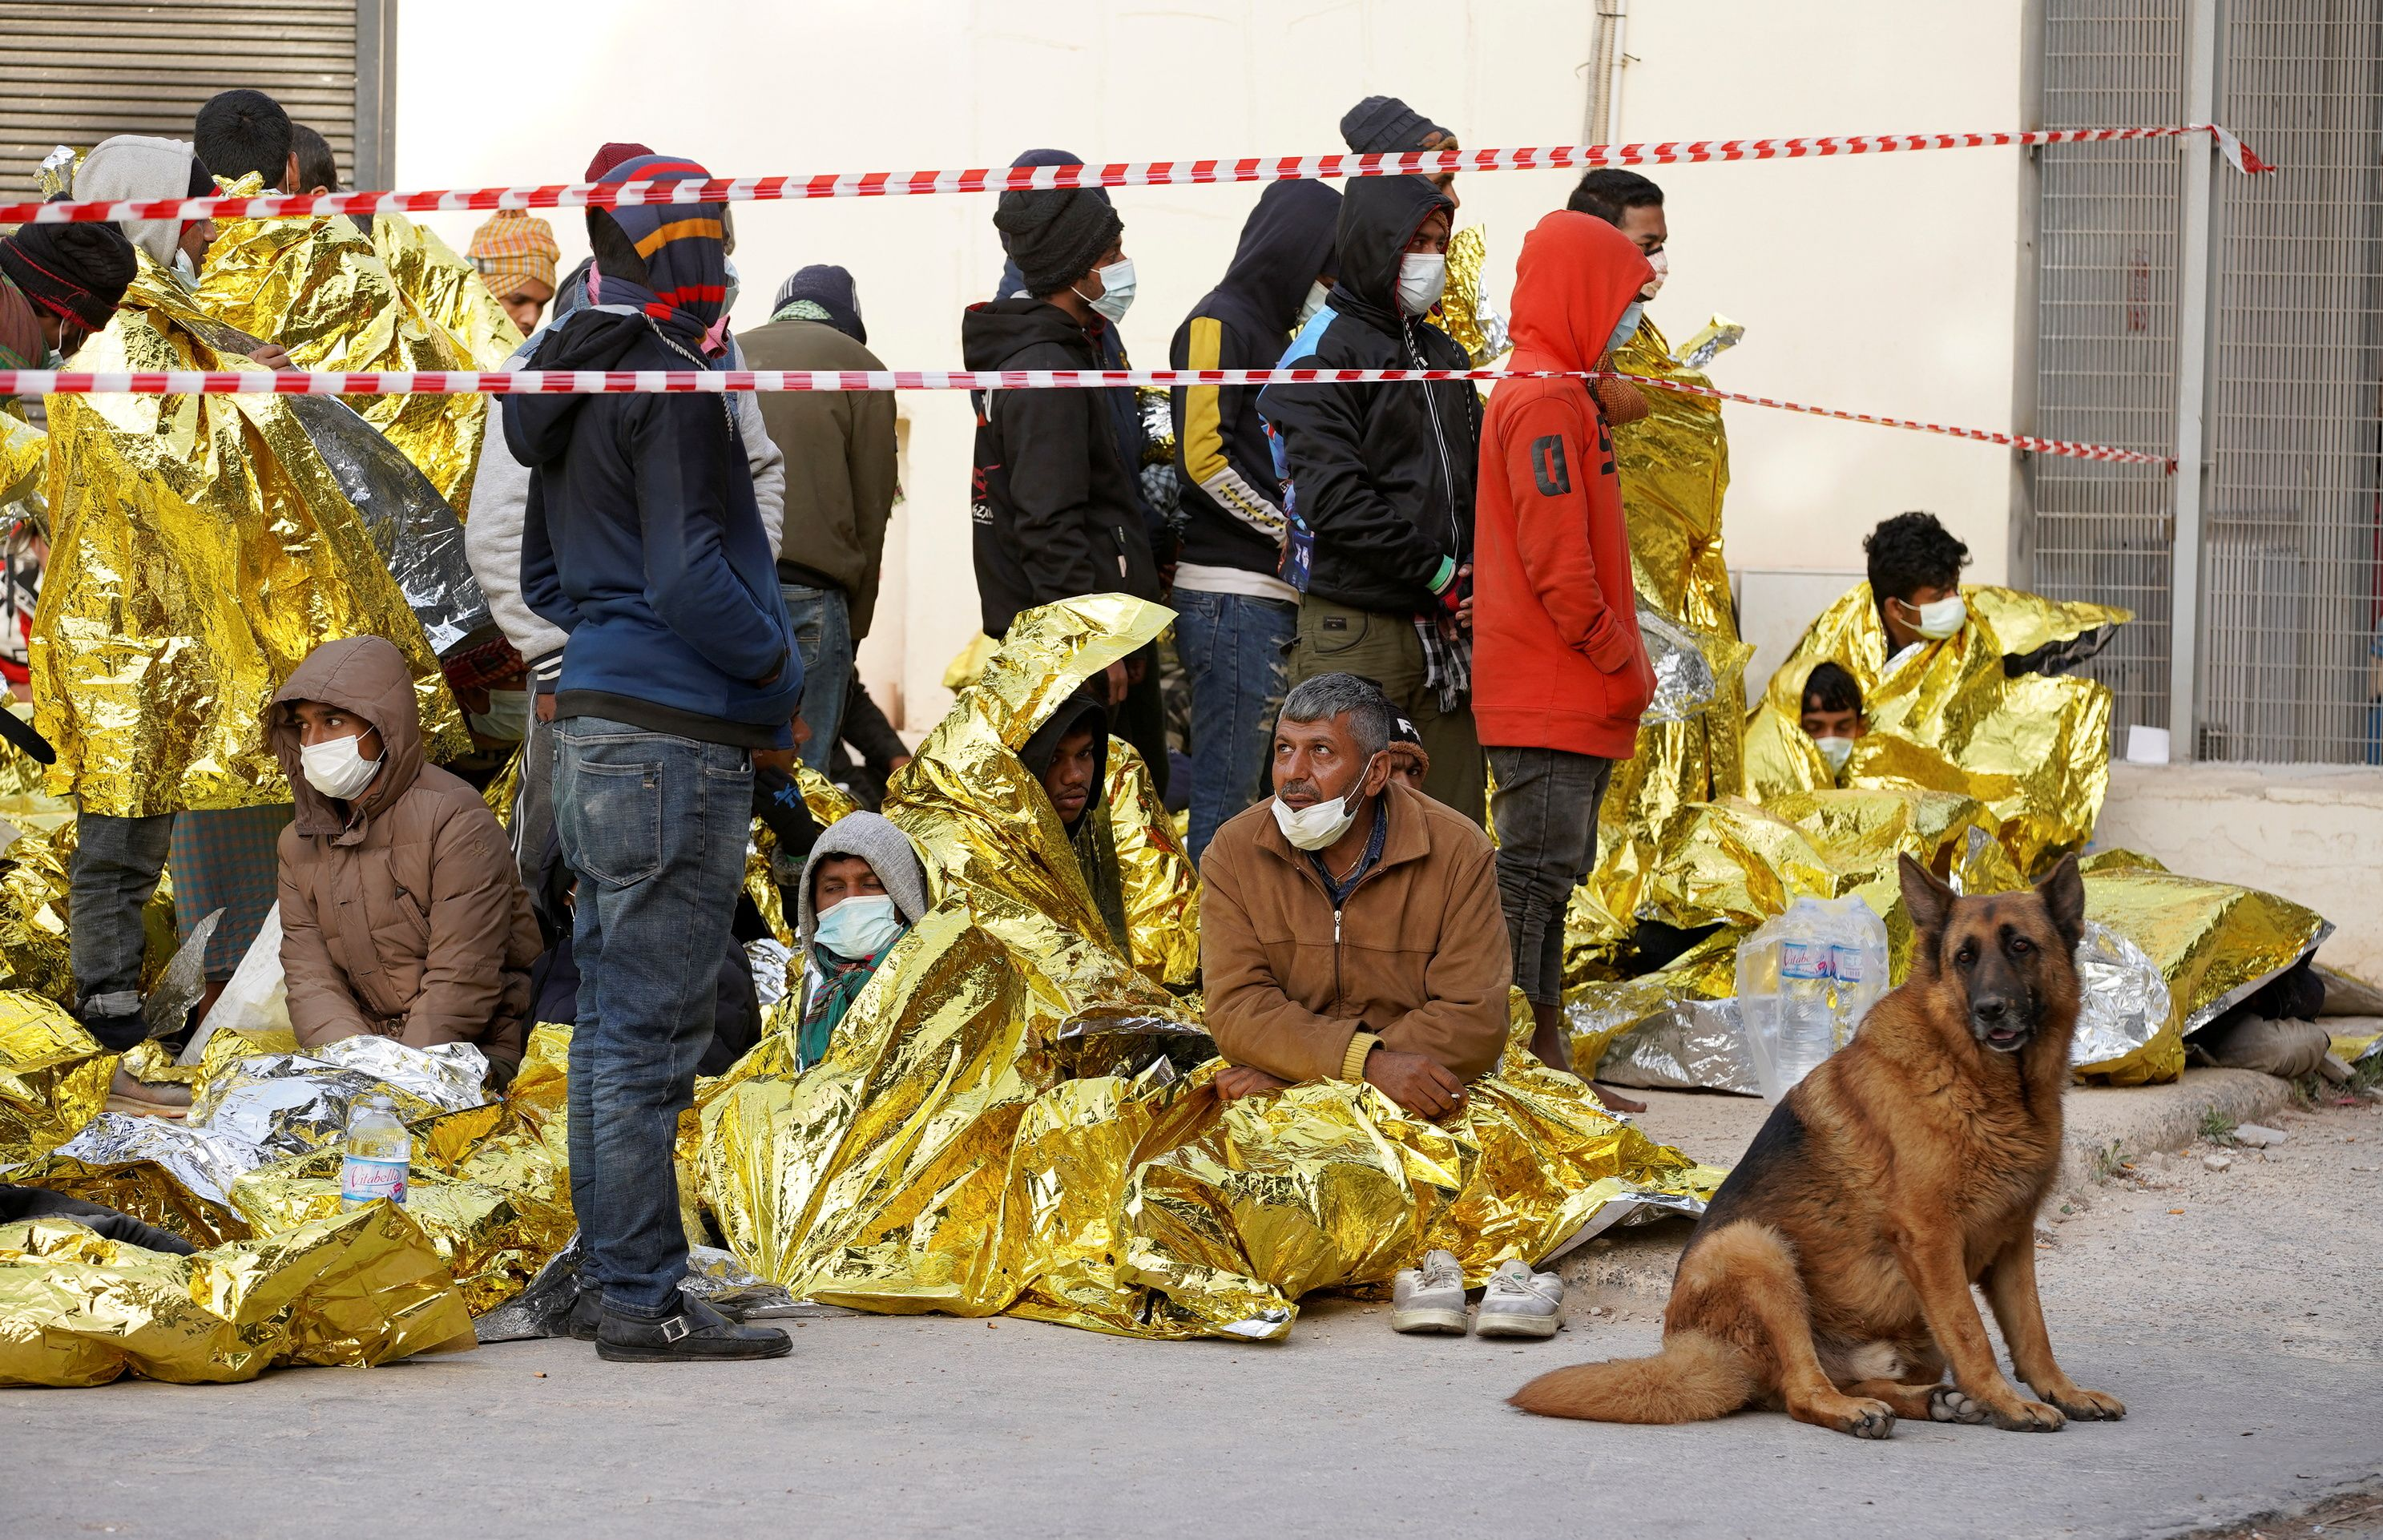 Migrants rest at a reception centre after arriving on the southern island of Lampedusa, Italy May 11, 2021. REUTERS/Antonio Parrinello